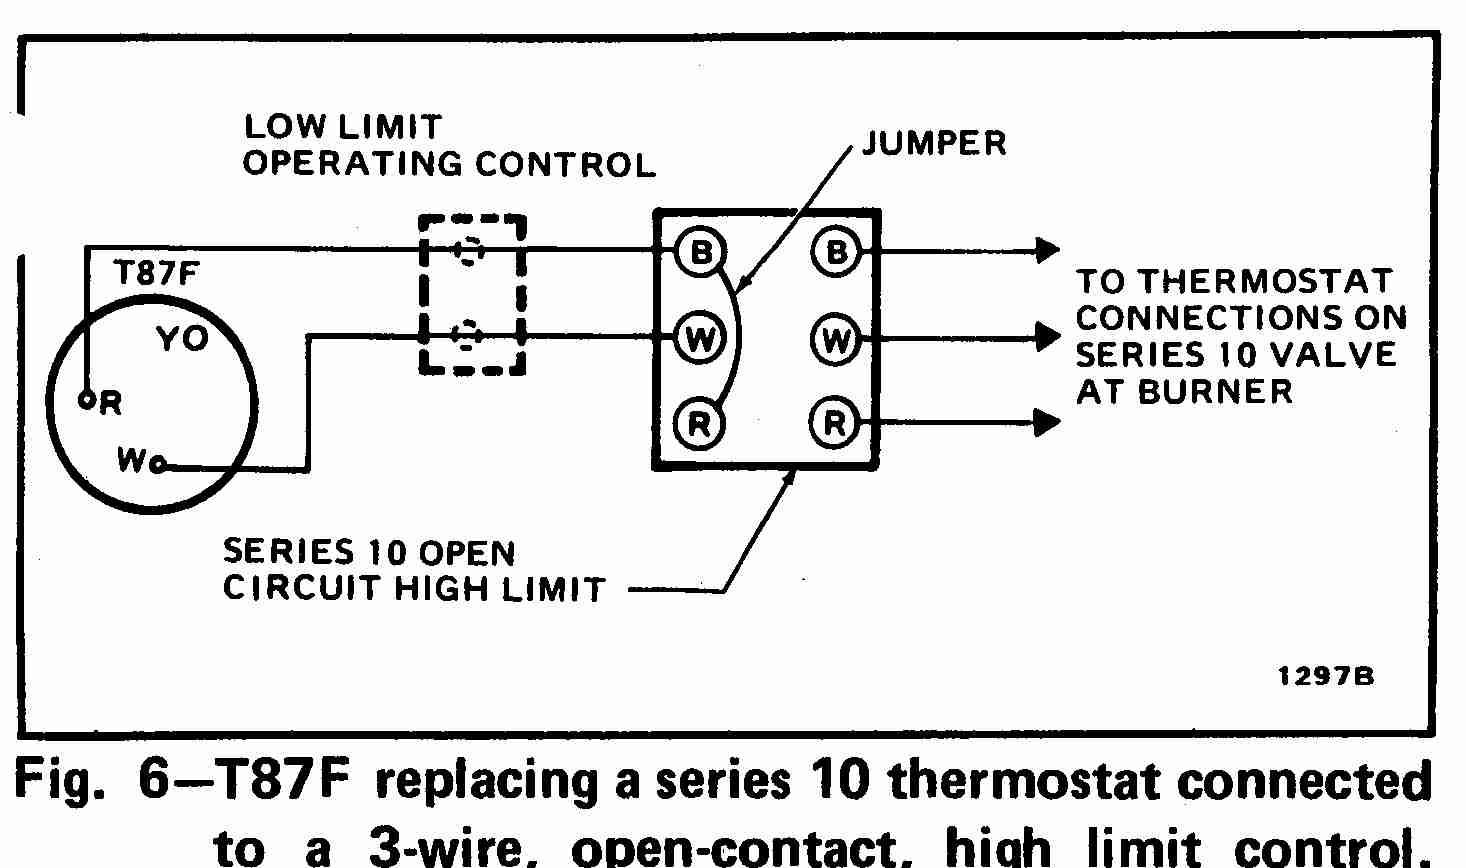 TT_T87F_0002_3WHL_DJF room thermostat wiring diagrams for hvac systems wiring diagram for mechanical thermostat at readyjetset.co